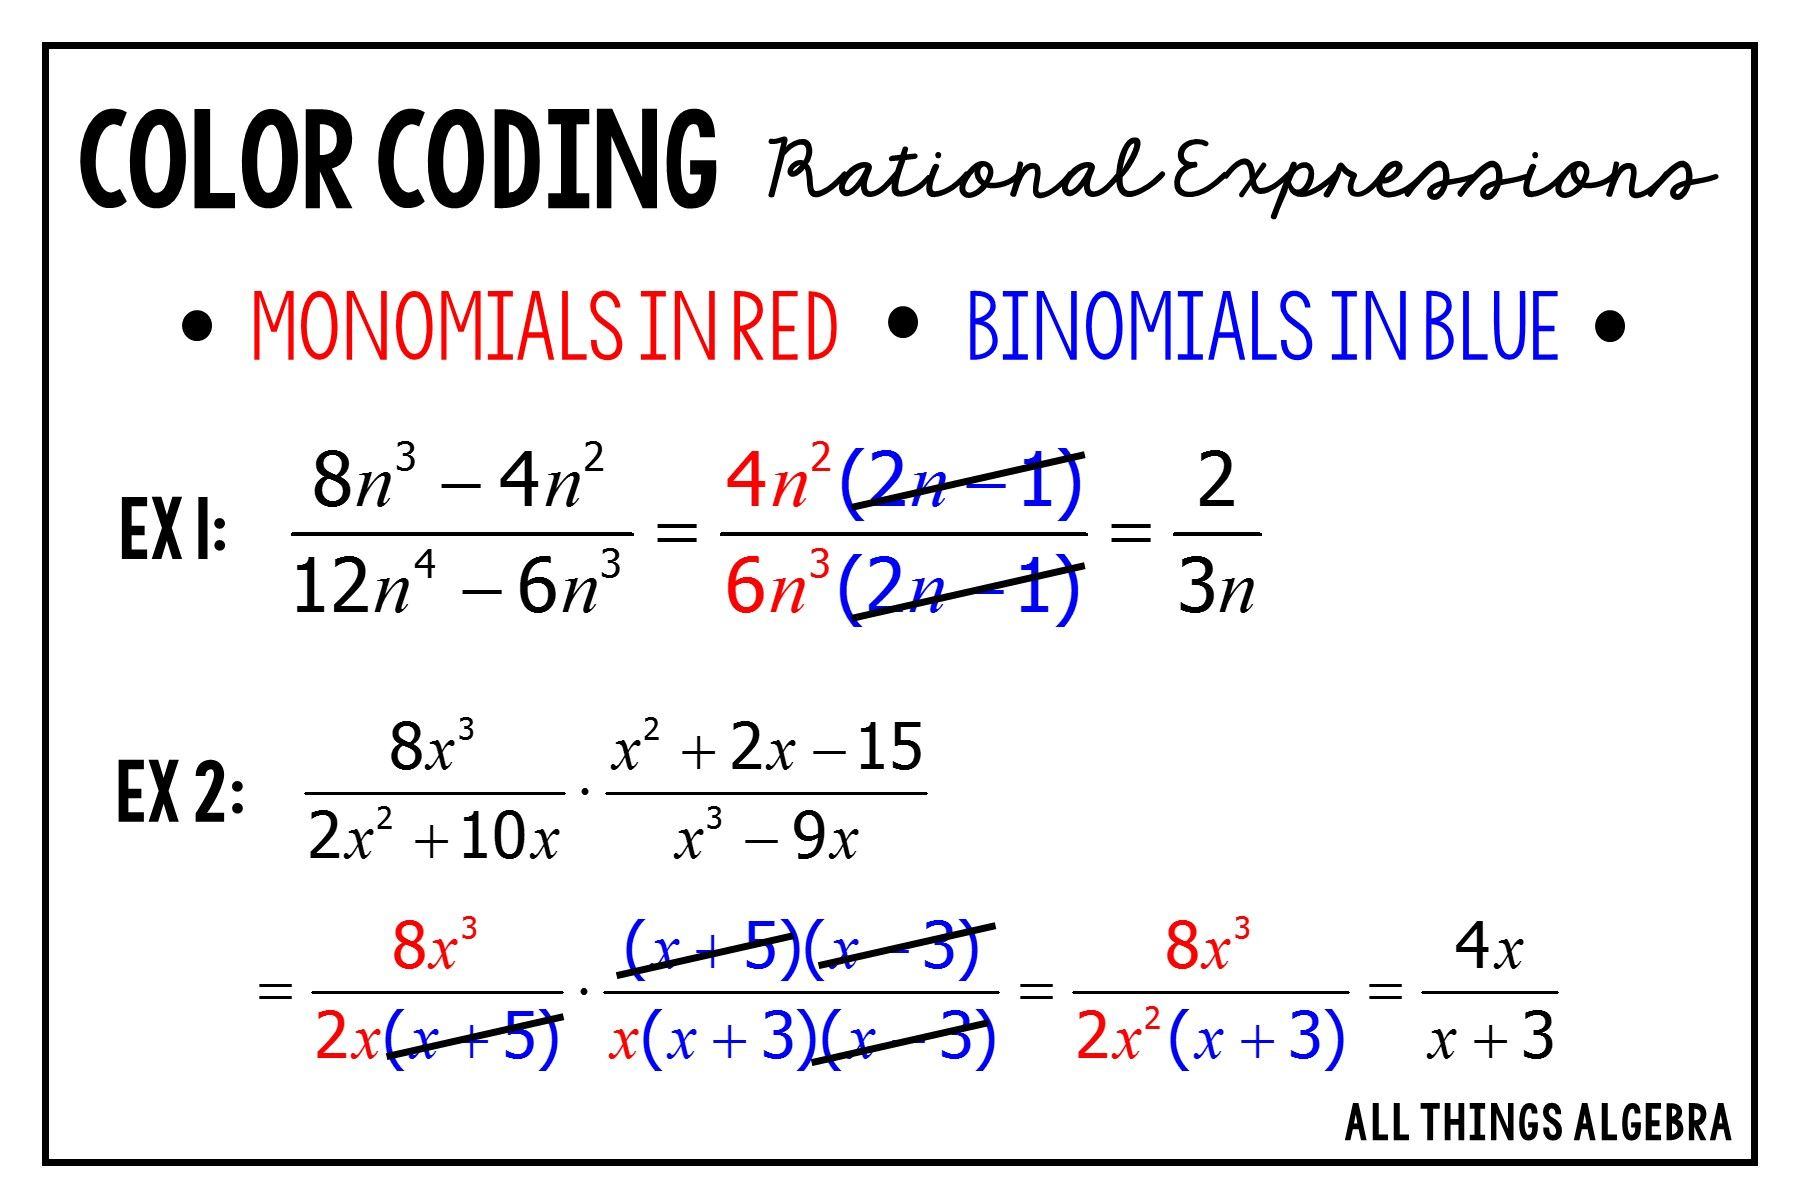 Color Coding With Rational Expressions